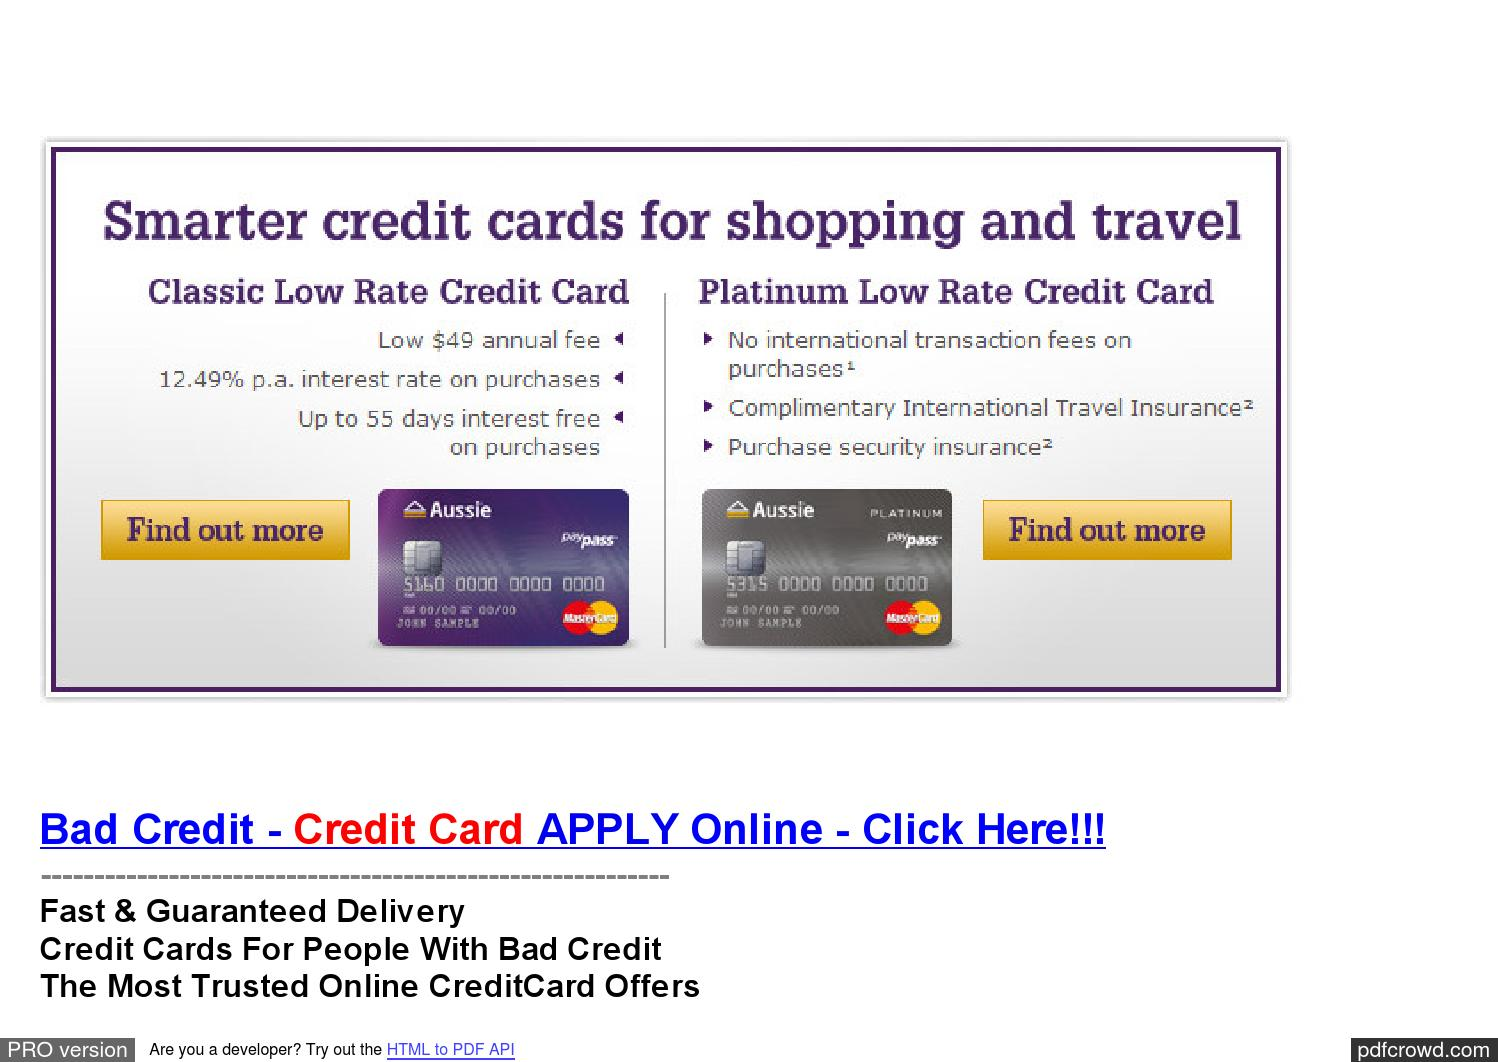 Capital one credit card european travel